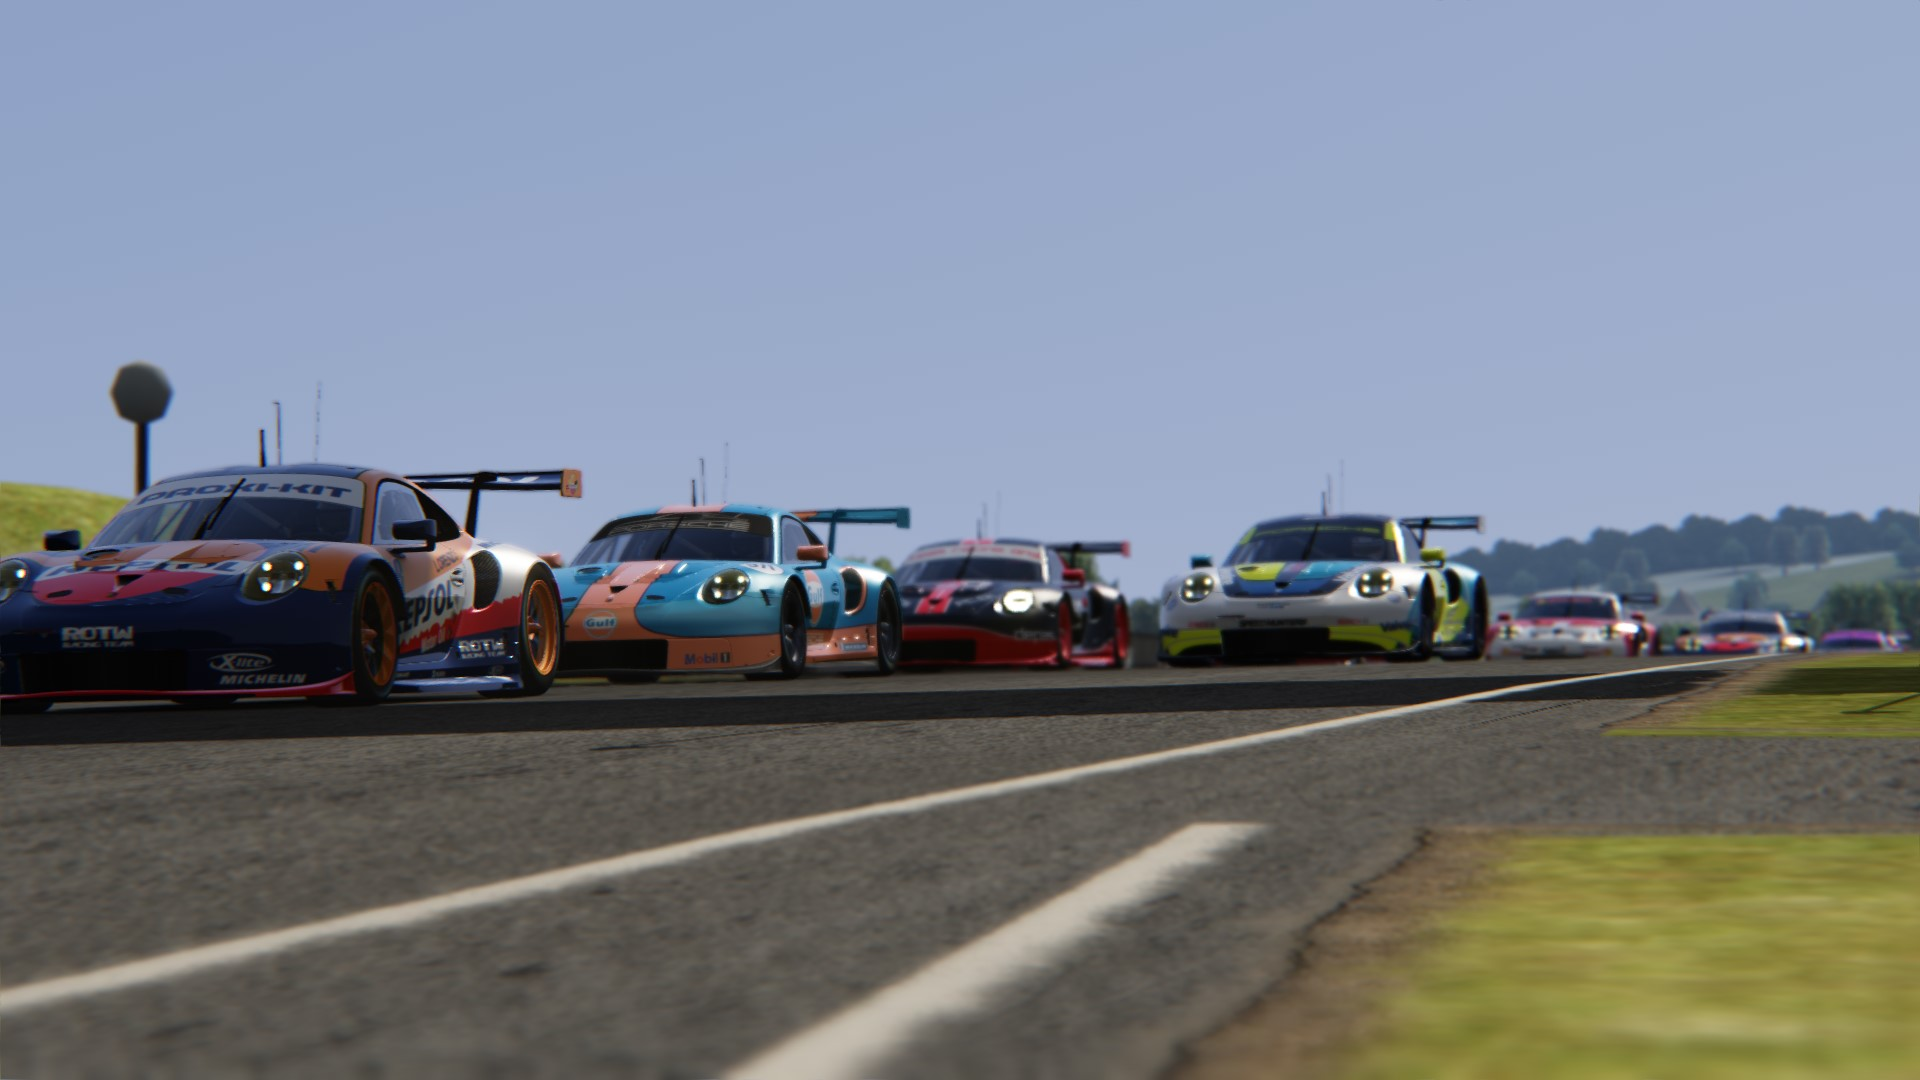 Screenshot_ks_porsche_911_rsr_2017_bathurst_30-7-117-2-23-51.jpg